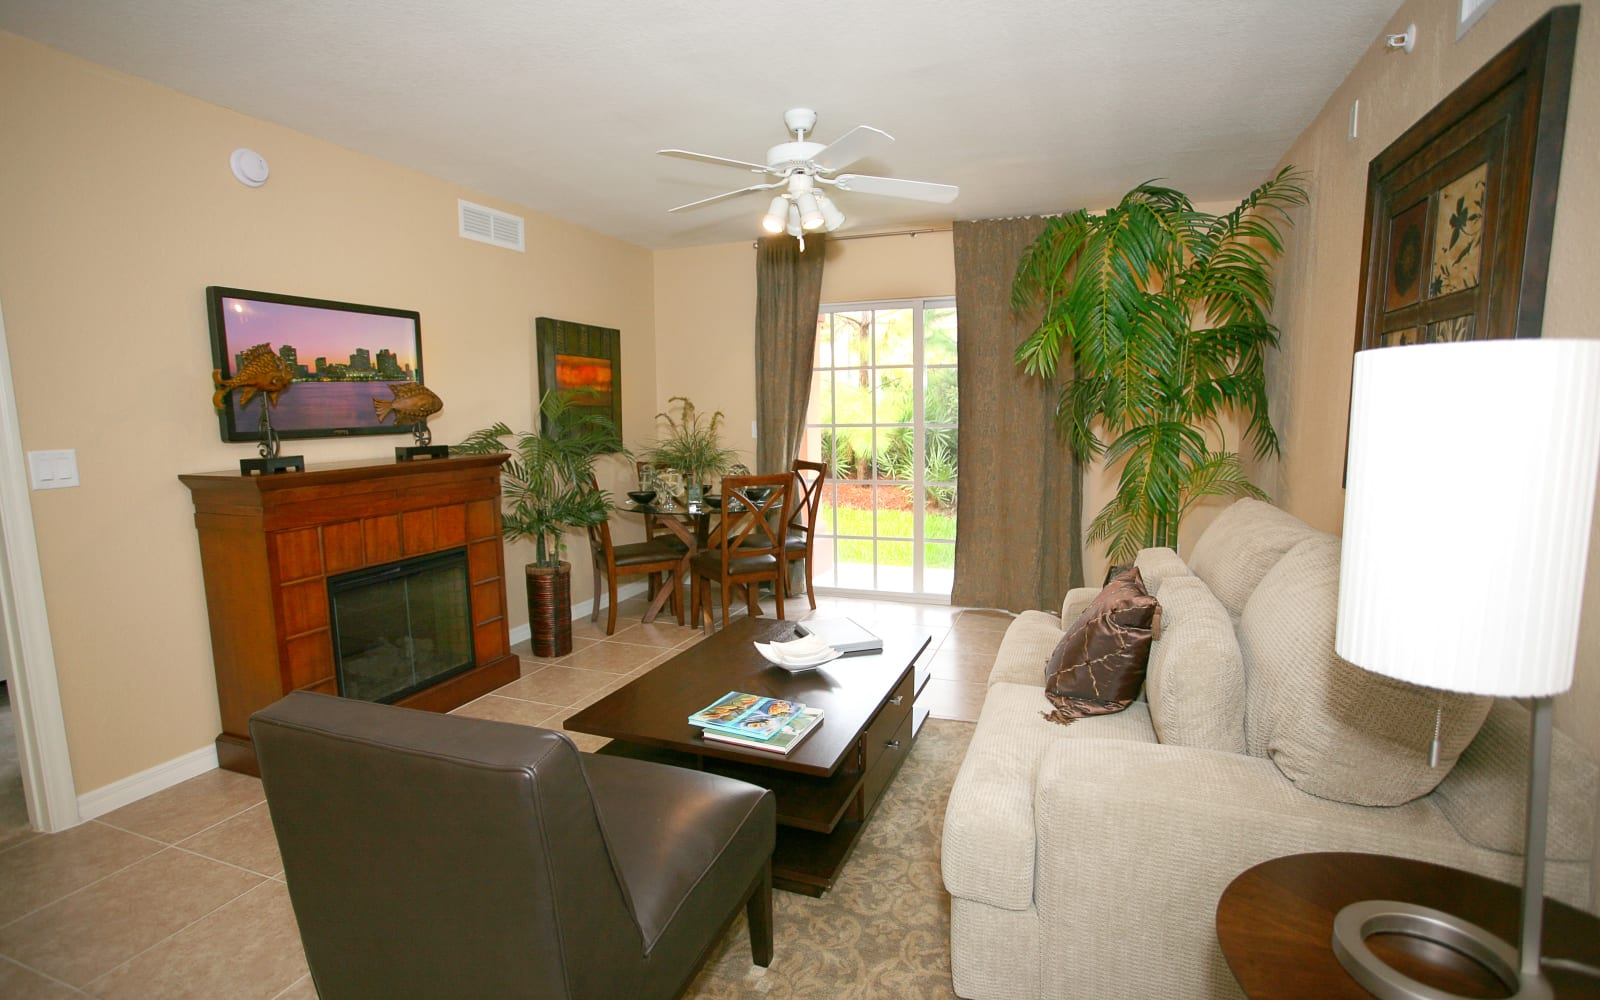 Living room with a fireplace at Green Cay Village in Boynton Beach, Florida